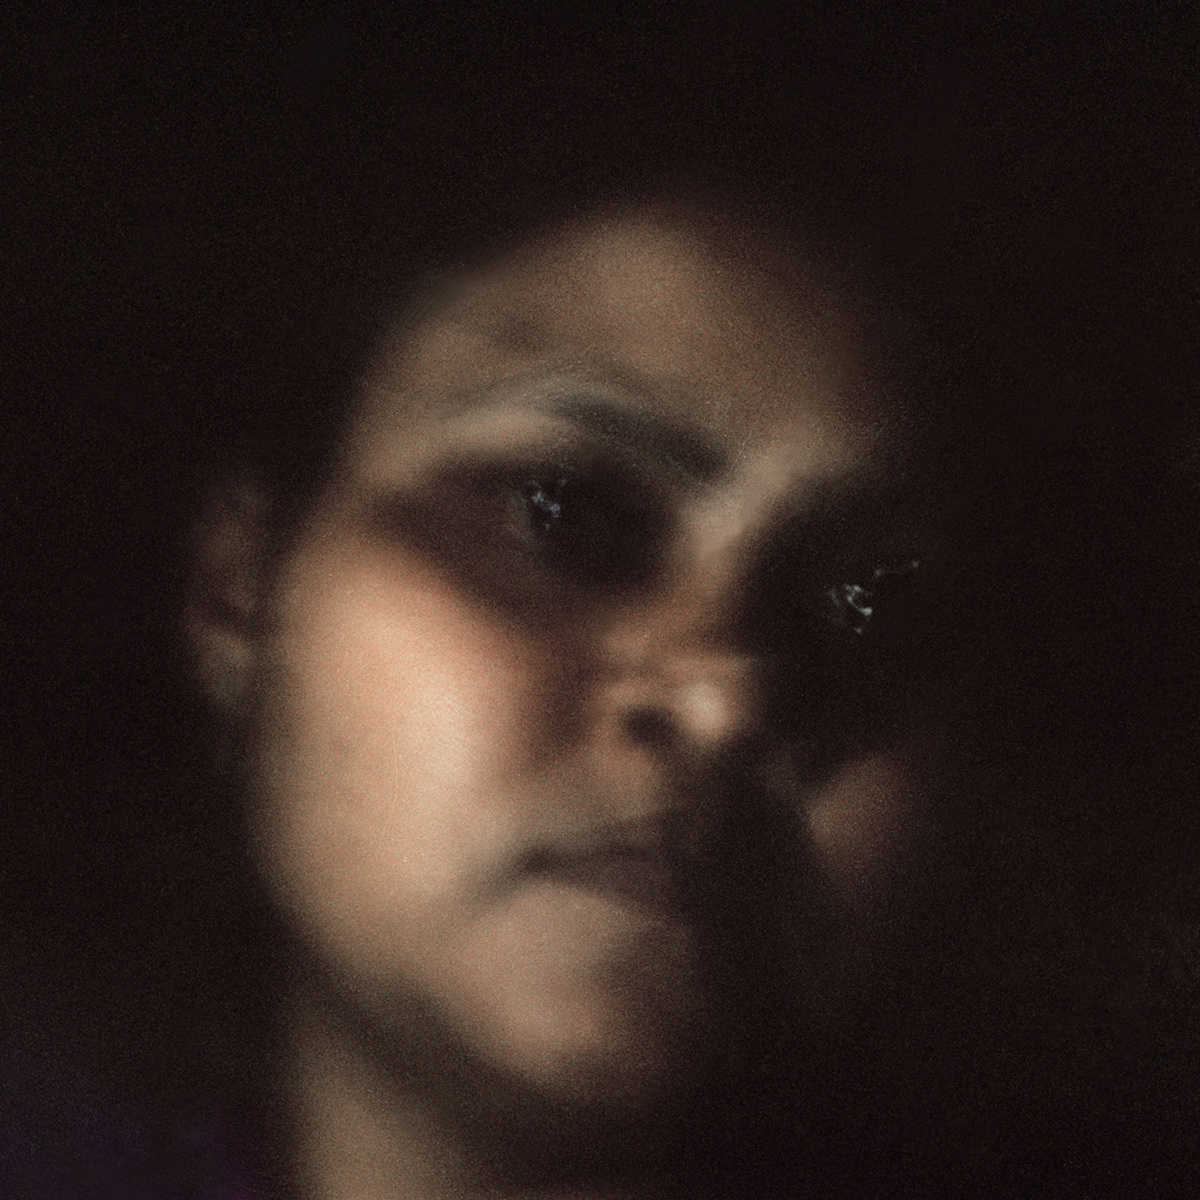 "Ranjana Manoj Chaudhury, 31, became a widow in 2004. Her husband, Manoj Prahladroa Chaudhury, 38, consumed pesticide and died on the very farm he was trying to cultivate on December 24, 2004. ""He kept saying I won't be here for long as I am under a lot of tension, but he never specified anything."" Two or three years before he took his life, Manoj had taken out two loans to put money into the family's six-acre land. The loans, from both private lenders and banks, amounted to 130,000 Indian Rupees (US$1,860)."